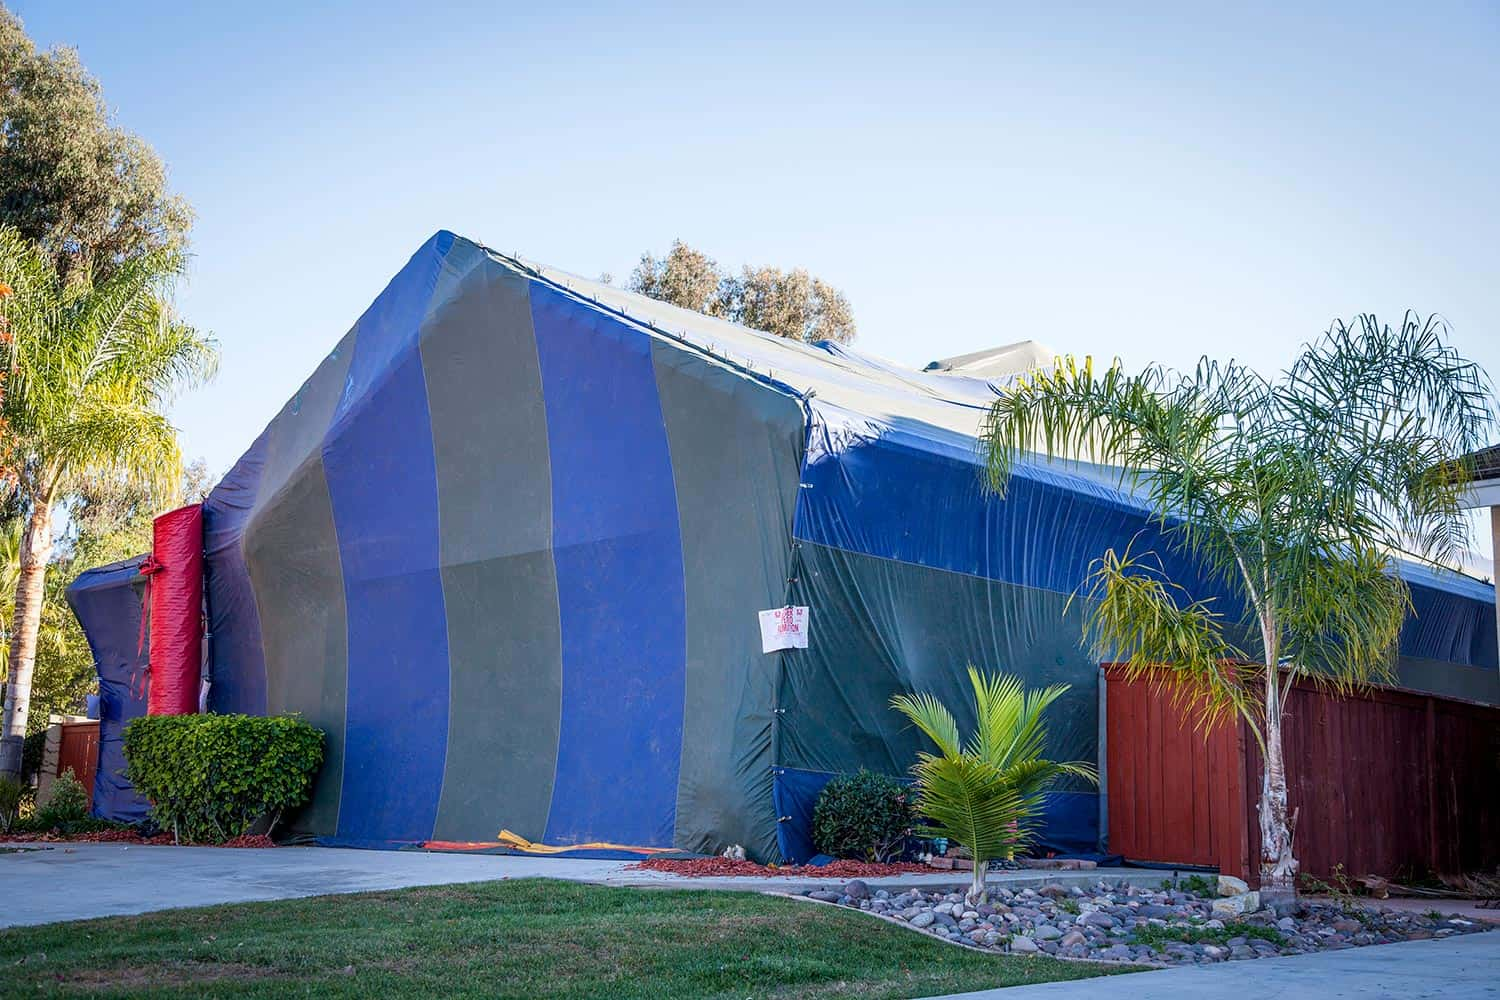 Termite tent covering home